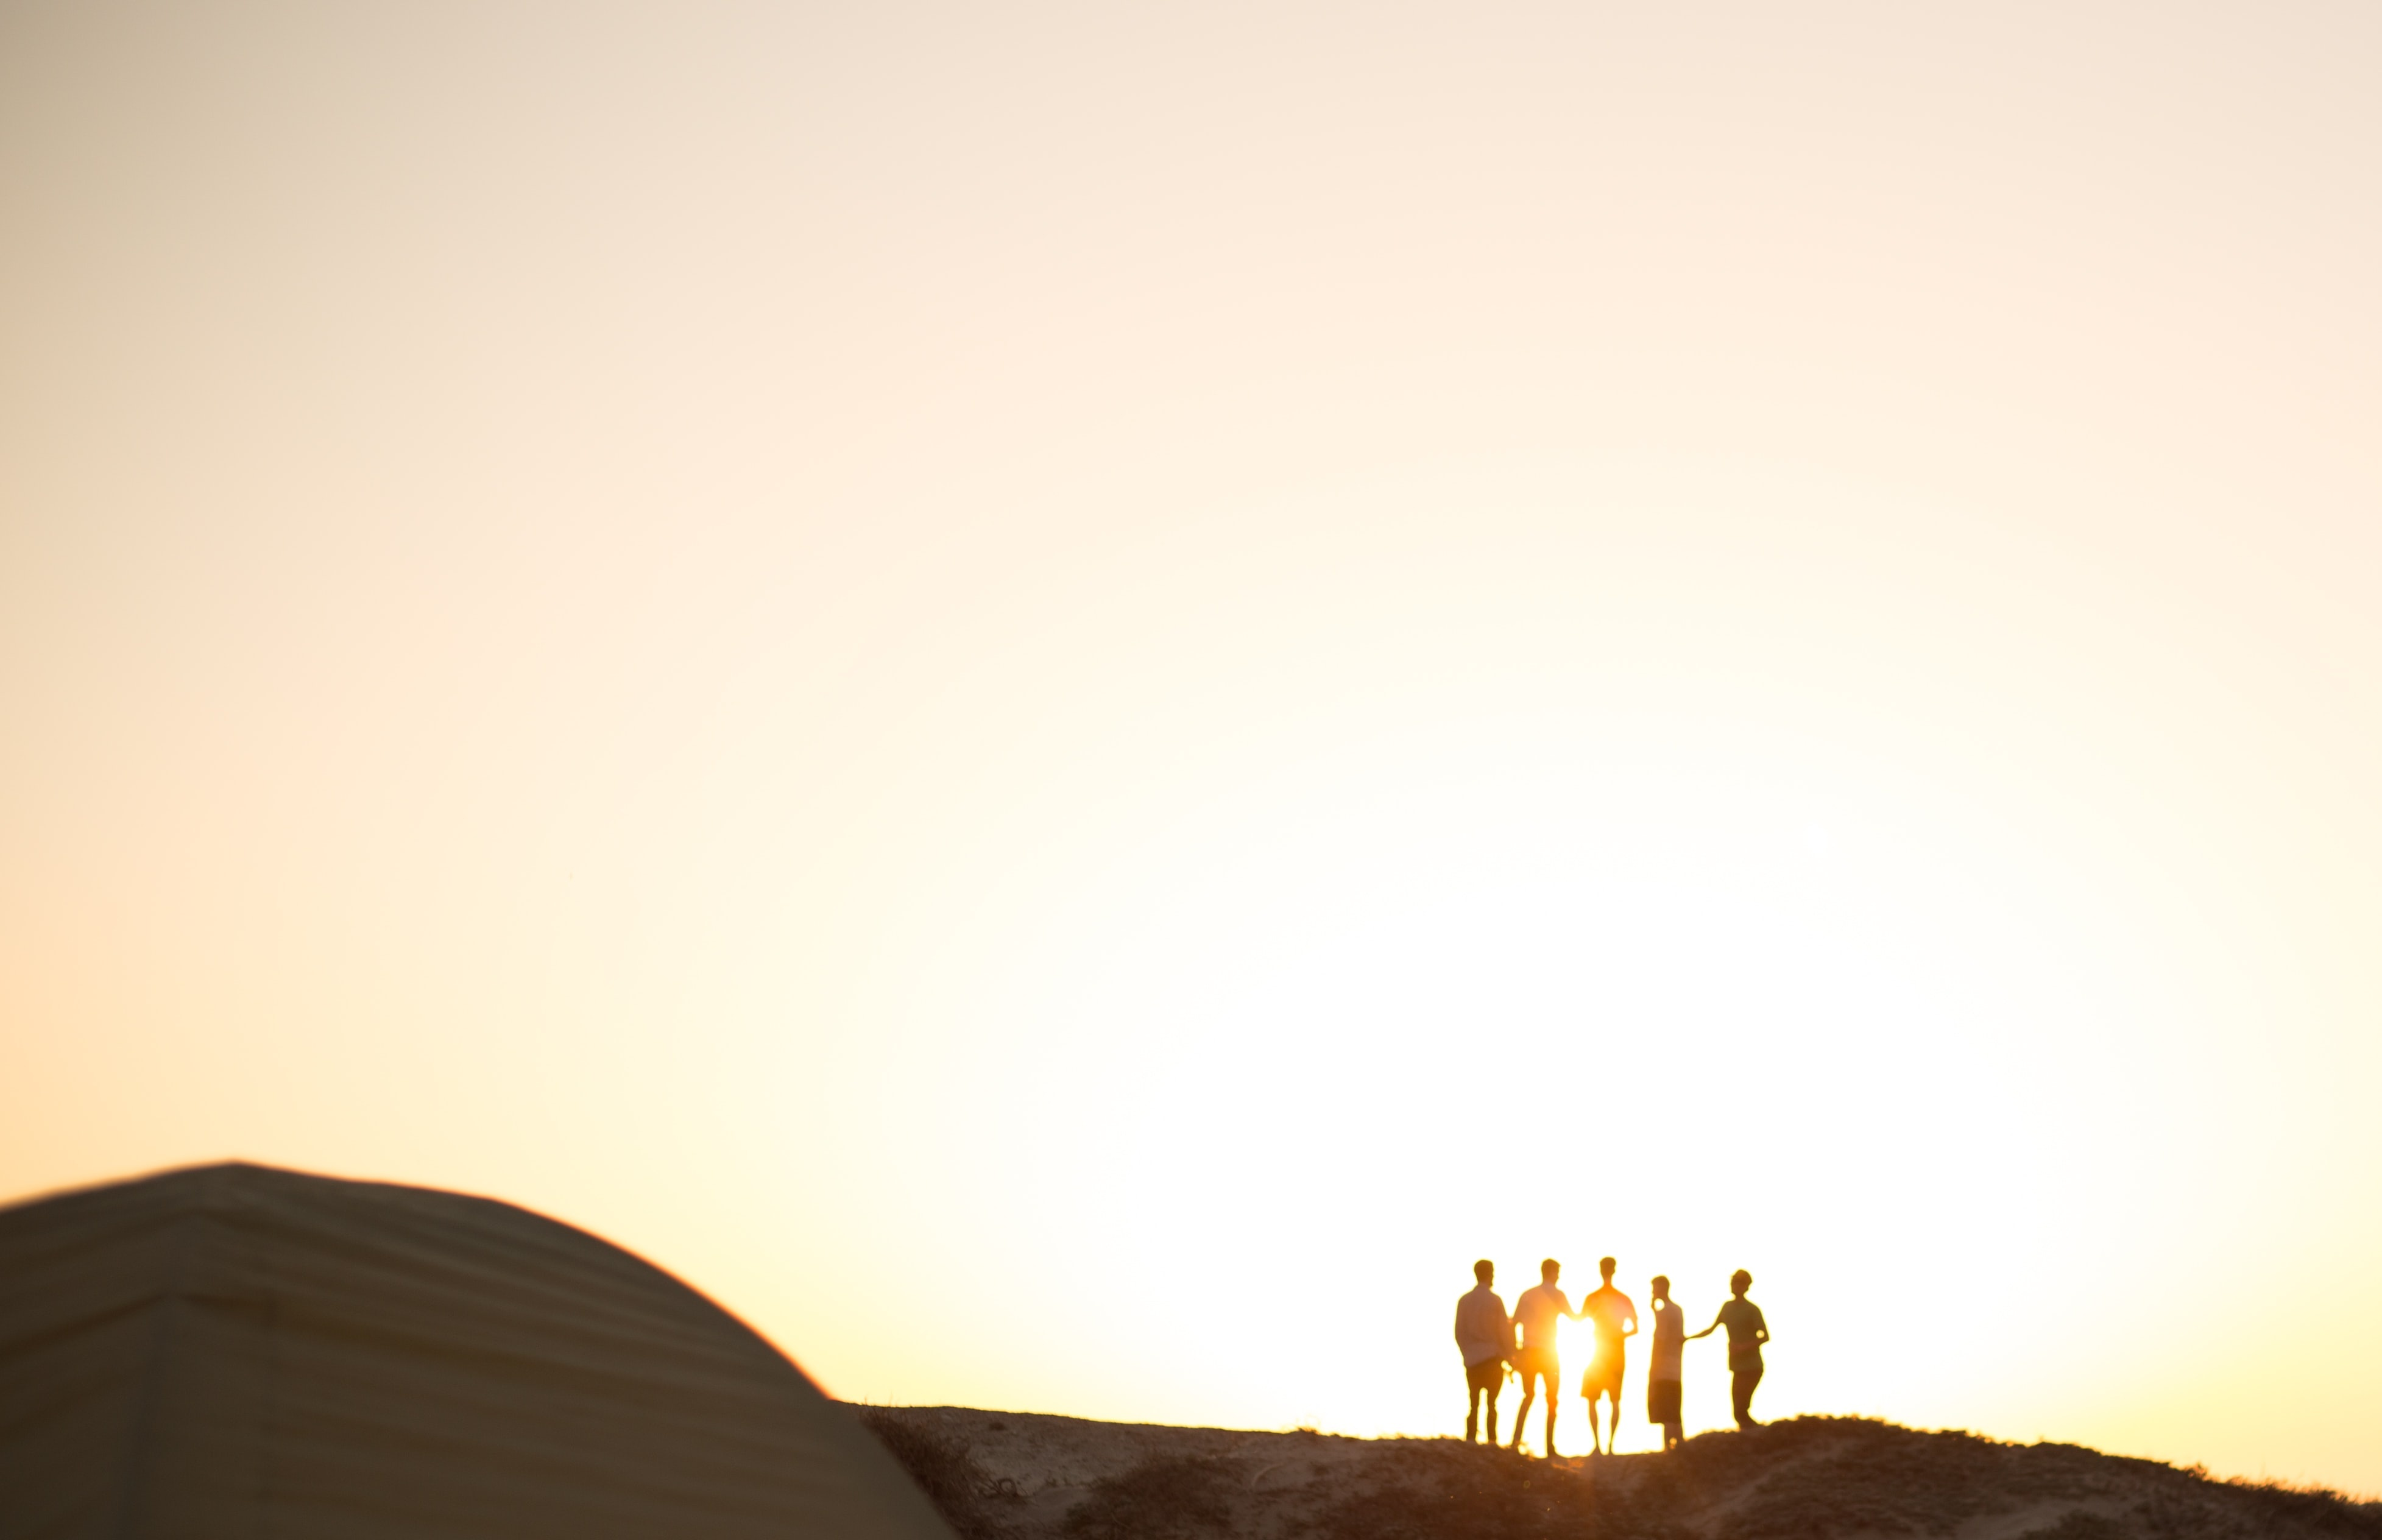 Photo of people's silhouettes at golden hour.